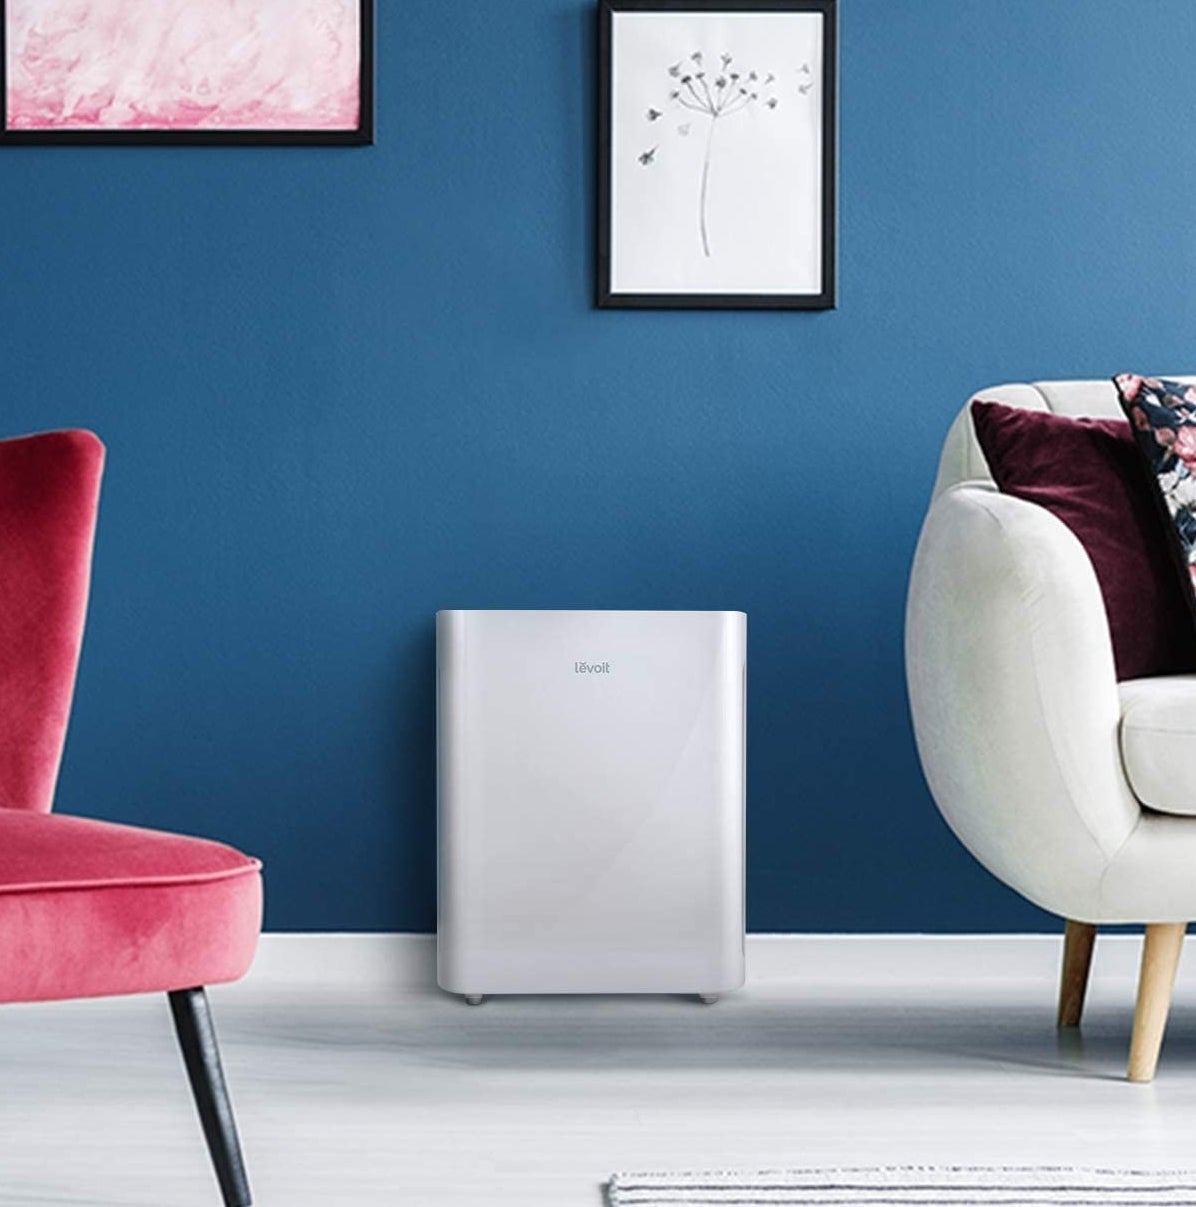 An air purifier in a bright and stylish room